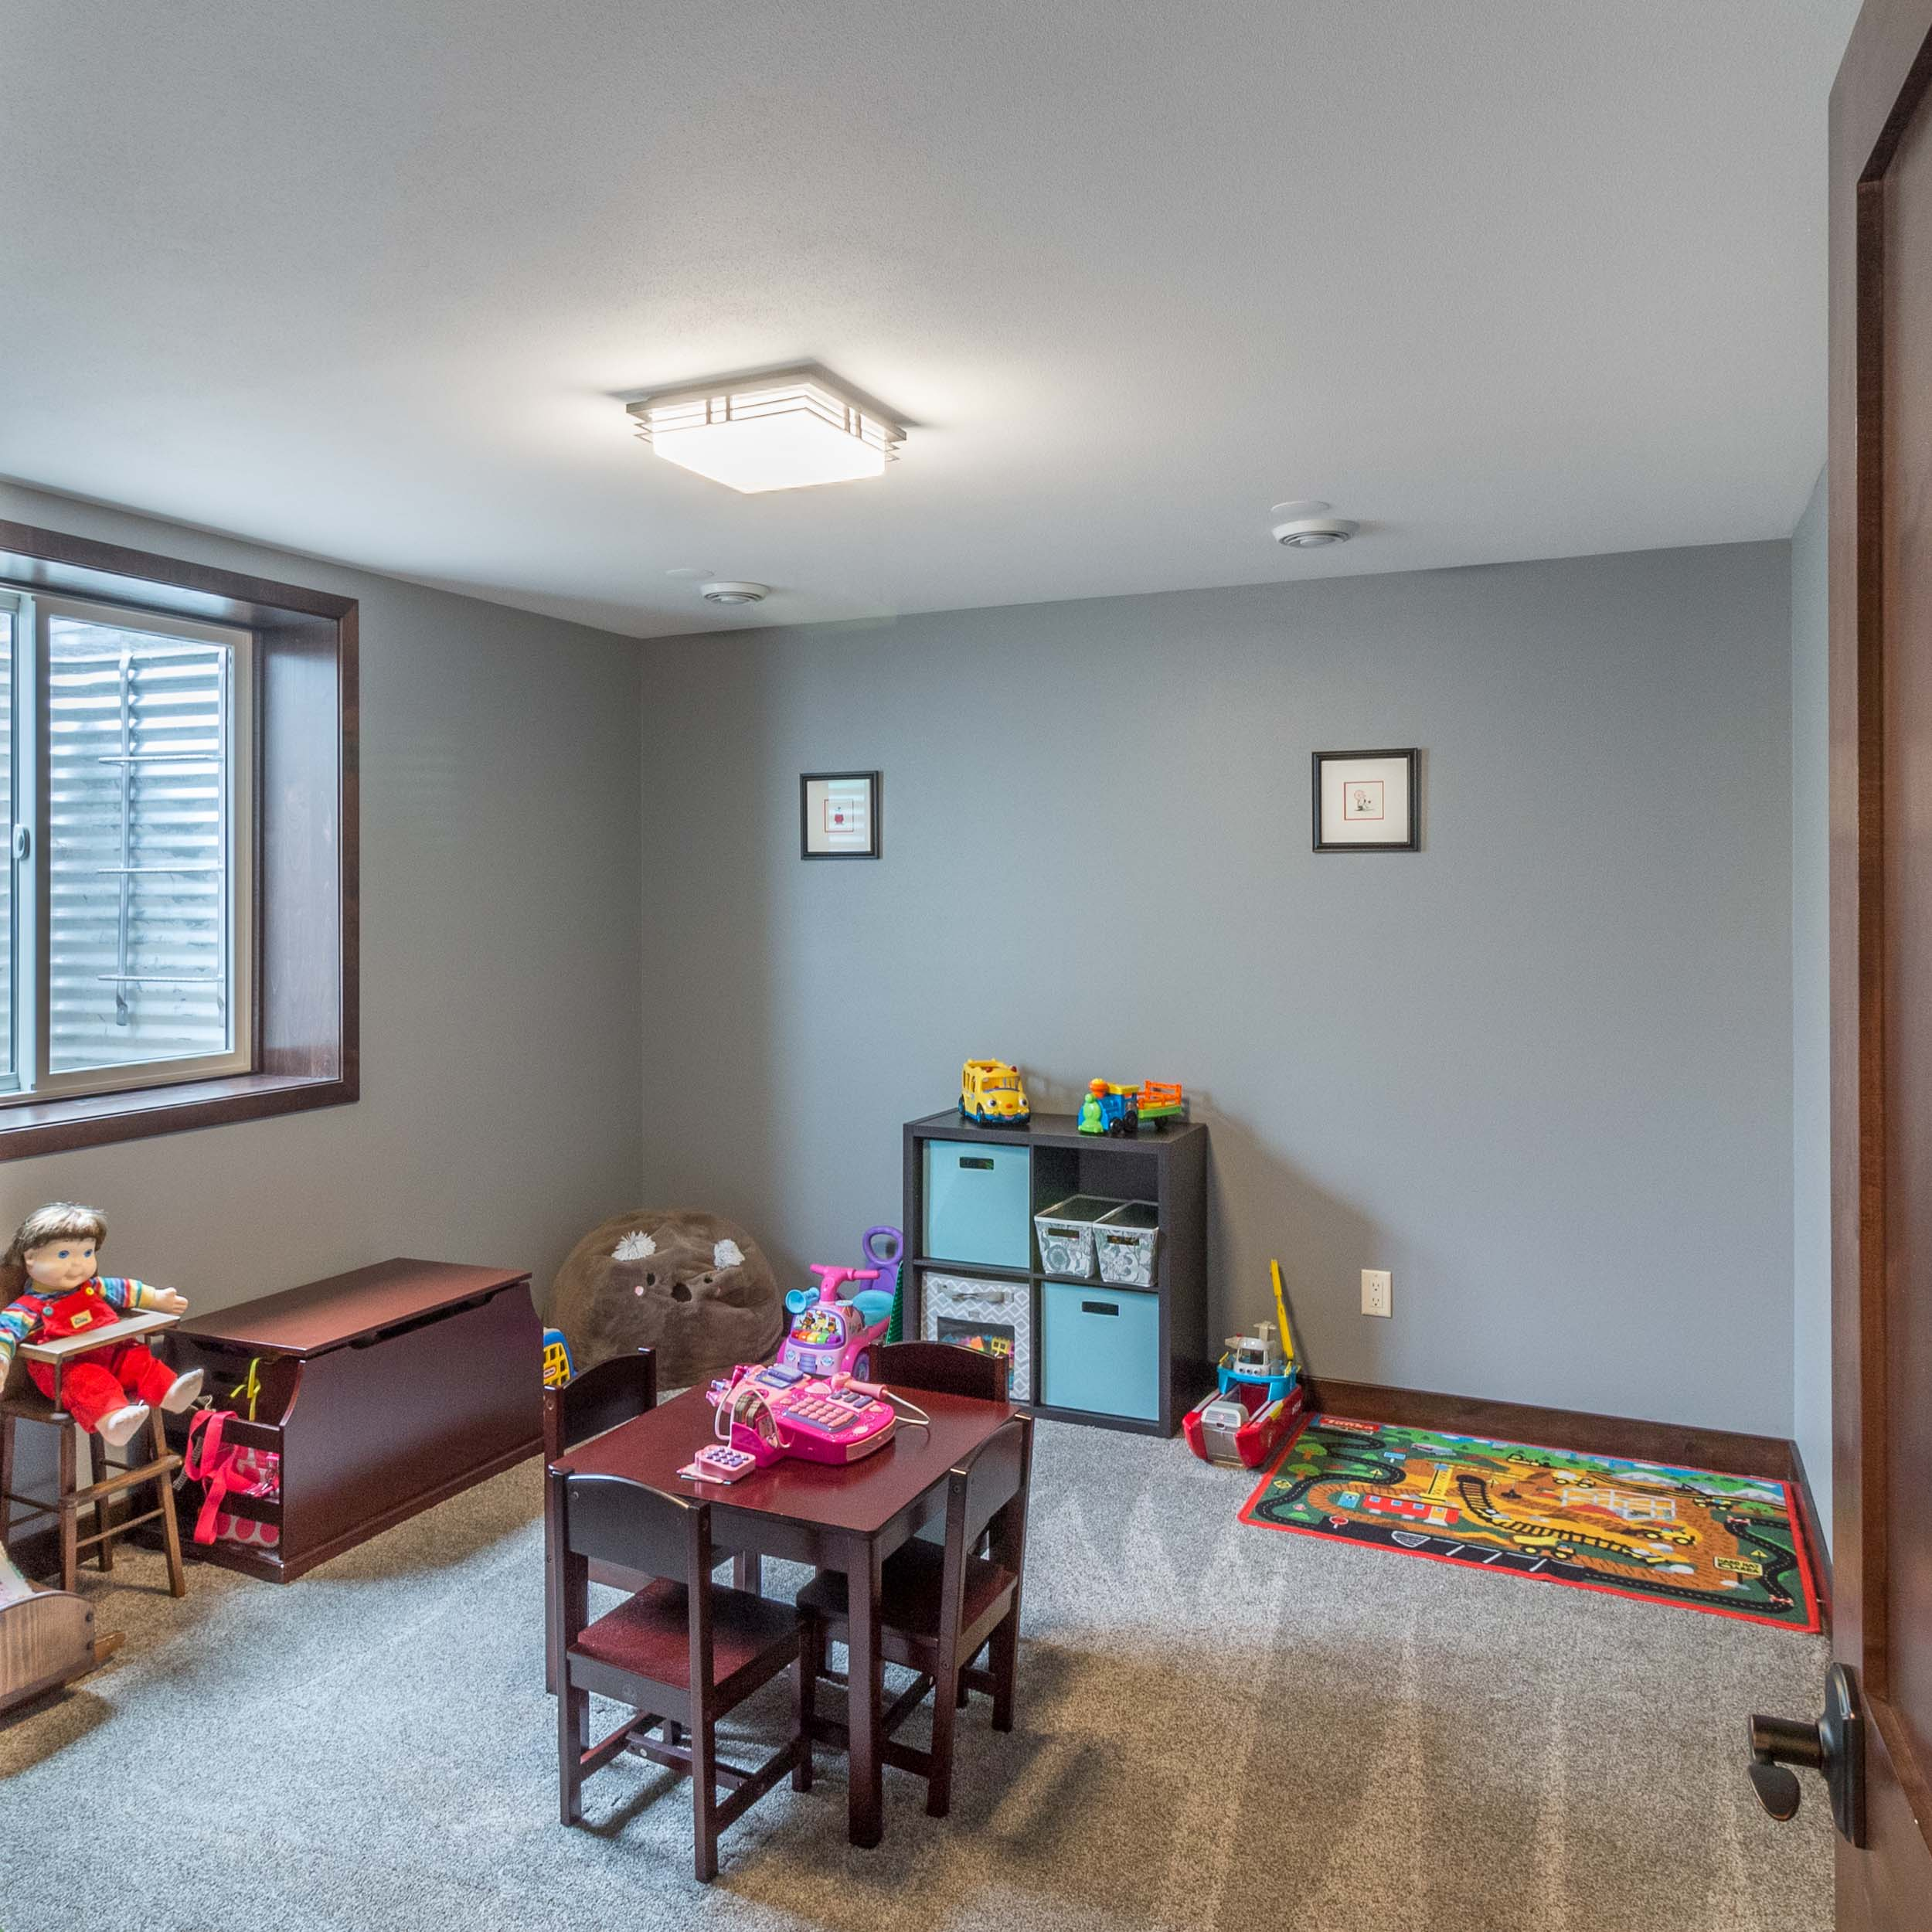 Carpet in a Basement - Carpet is an ideal choice for a child's playroom. It is soft underfoot, and provides a warmer floor and creates a quieter room.